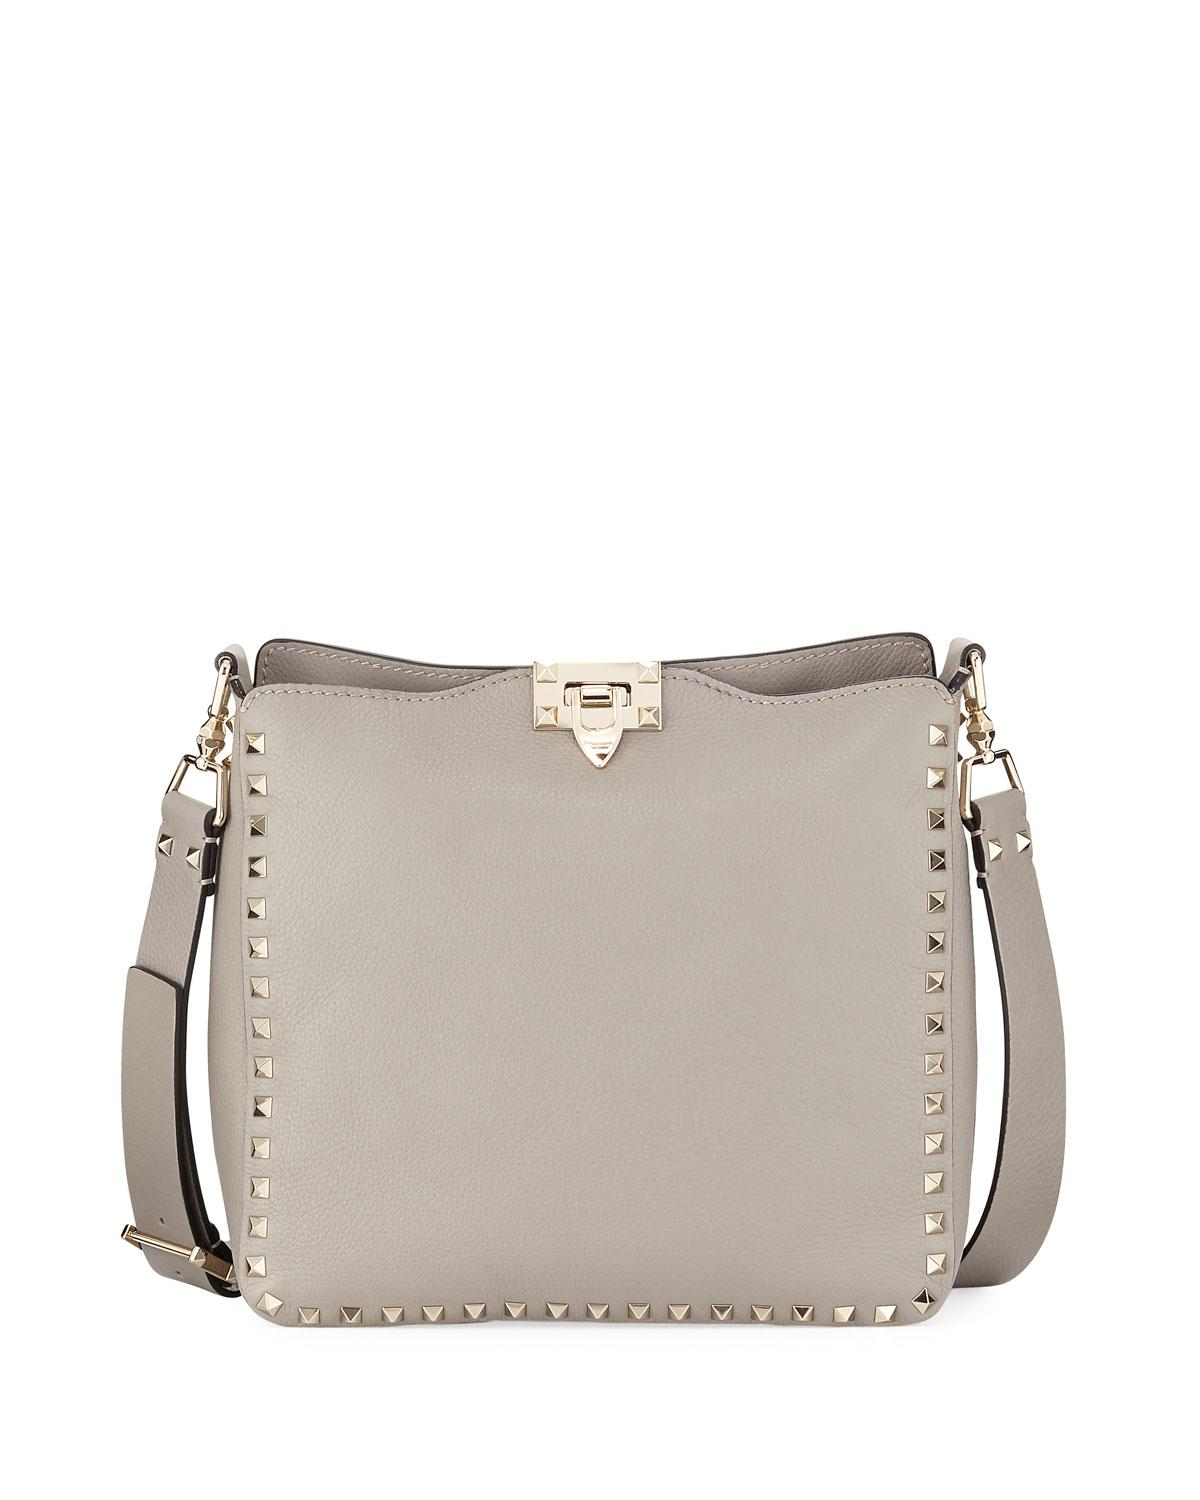 d8b3cb5774 Valentino Rockstud Small Leather Hobo Bag In Gray | ModeSens